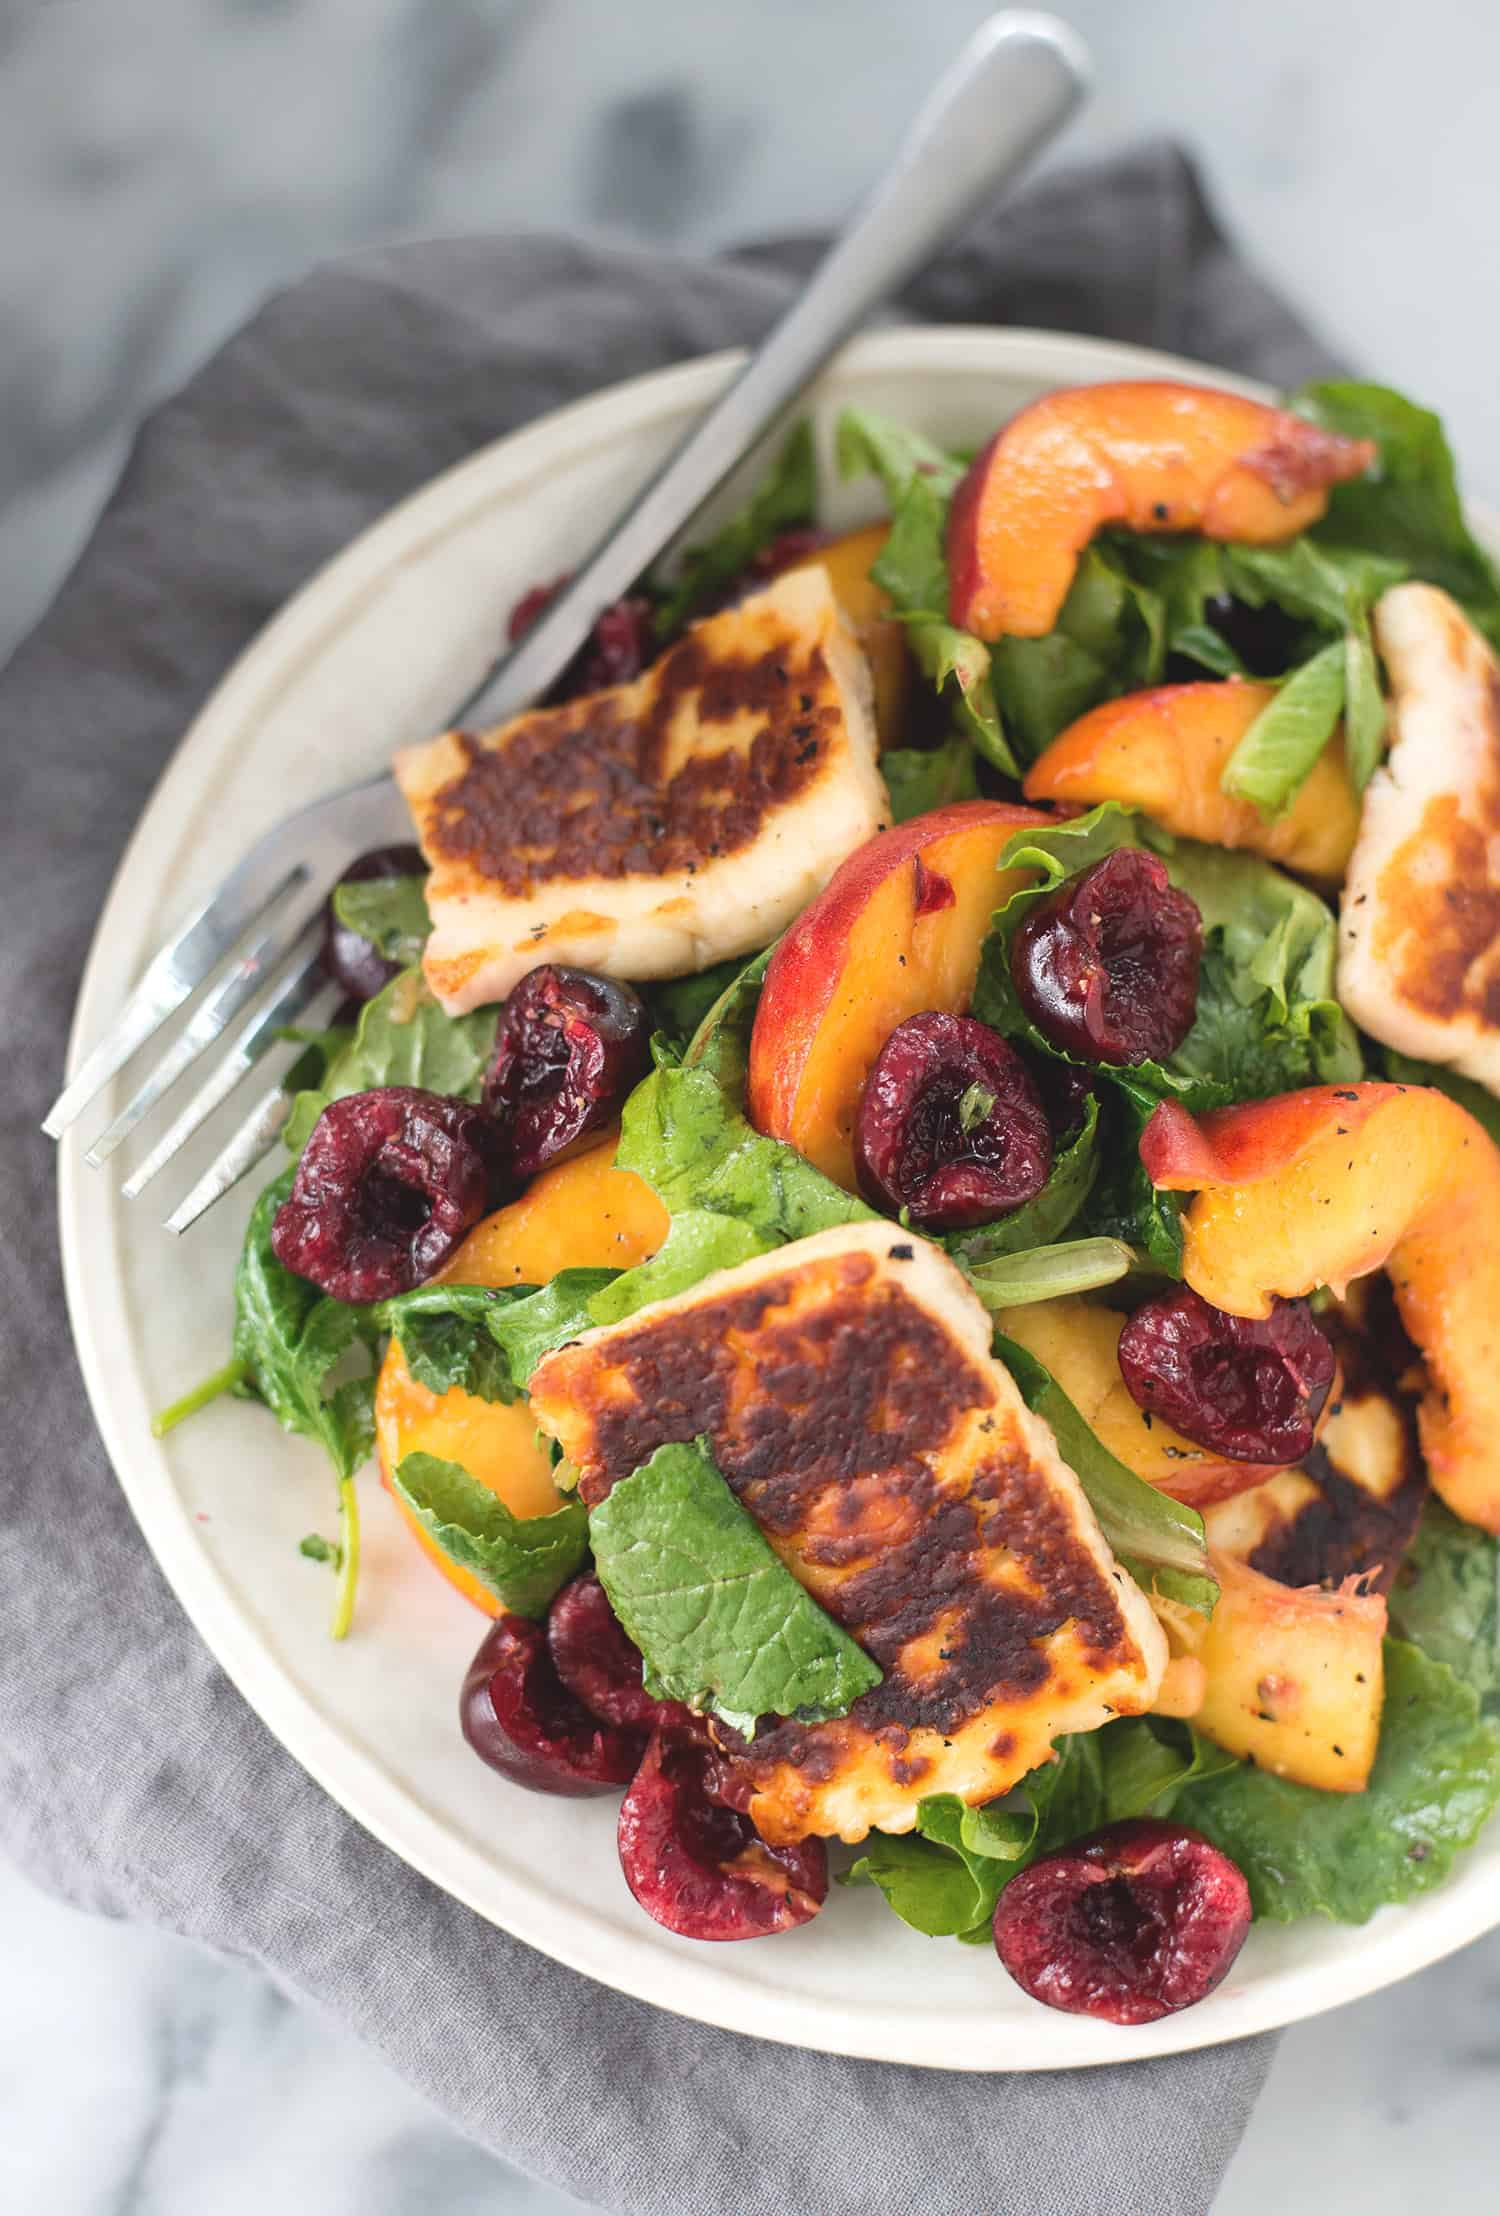 Peach, Cherry and Halloumi Salad! This vibrant salad is perfect for summer. Fresh produce, grilled halloumi cheese, quinoa, pecans and a balsamic vinegar. Vegetarian & Gluten-free | www.delishknowledge.com